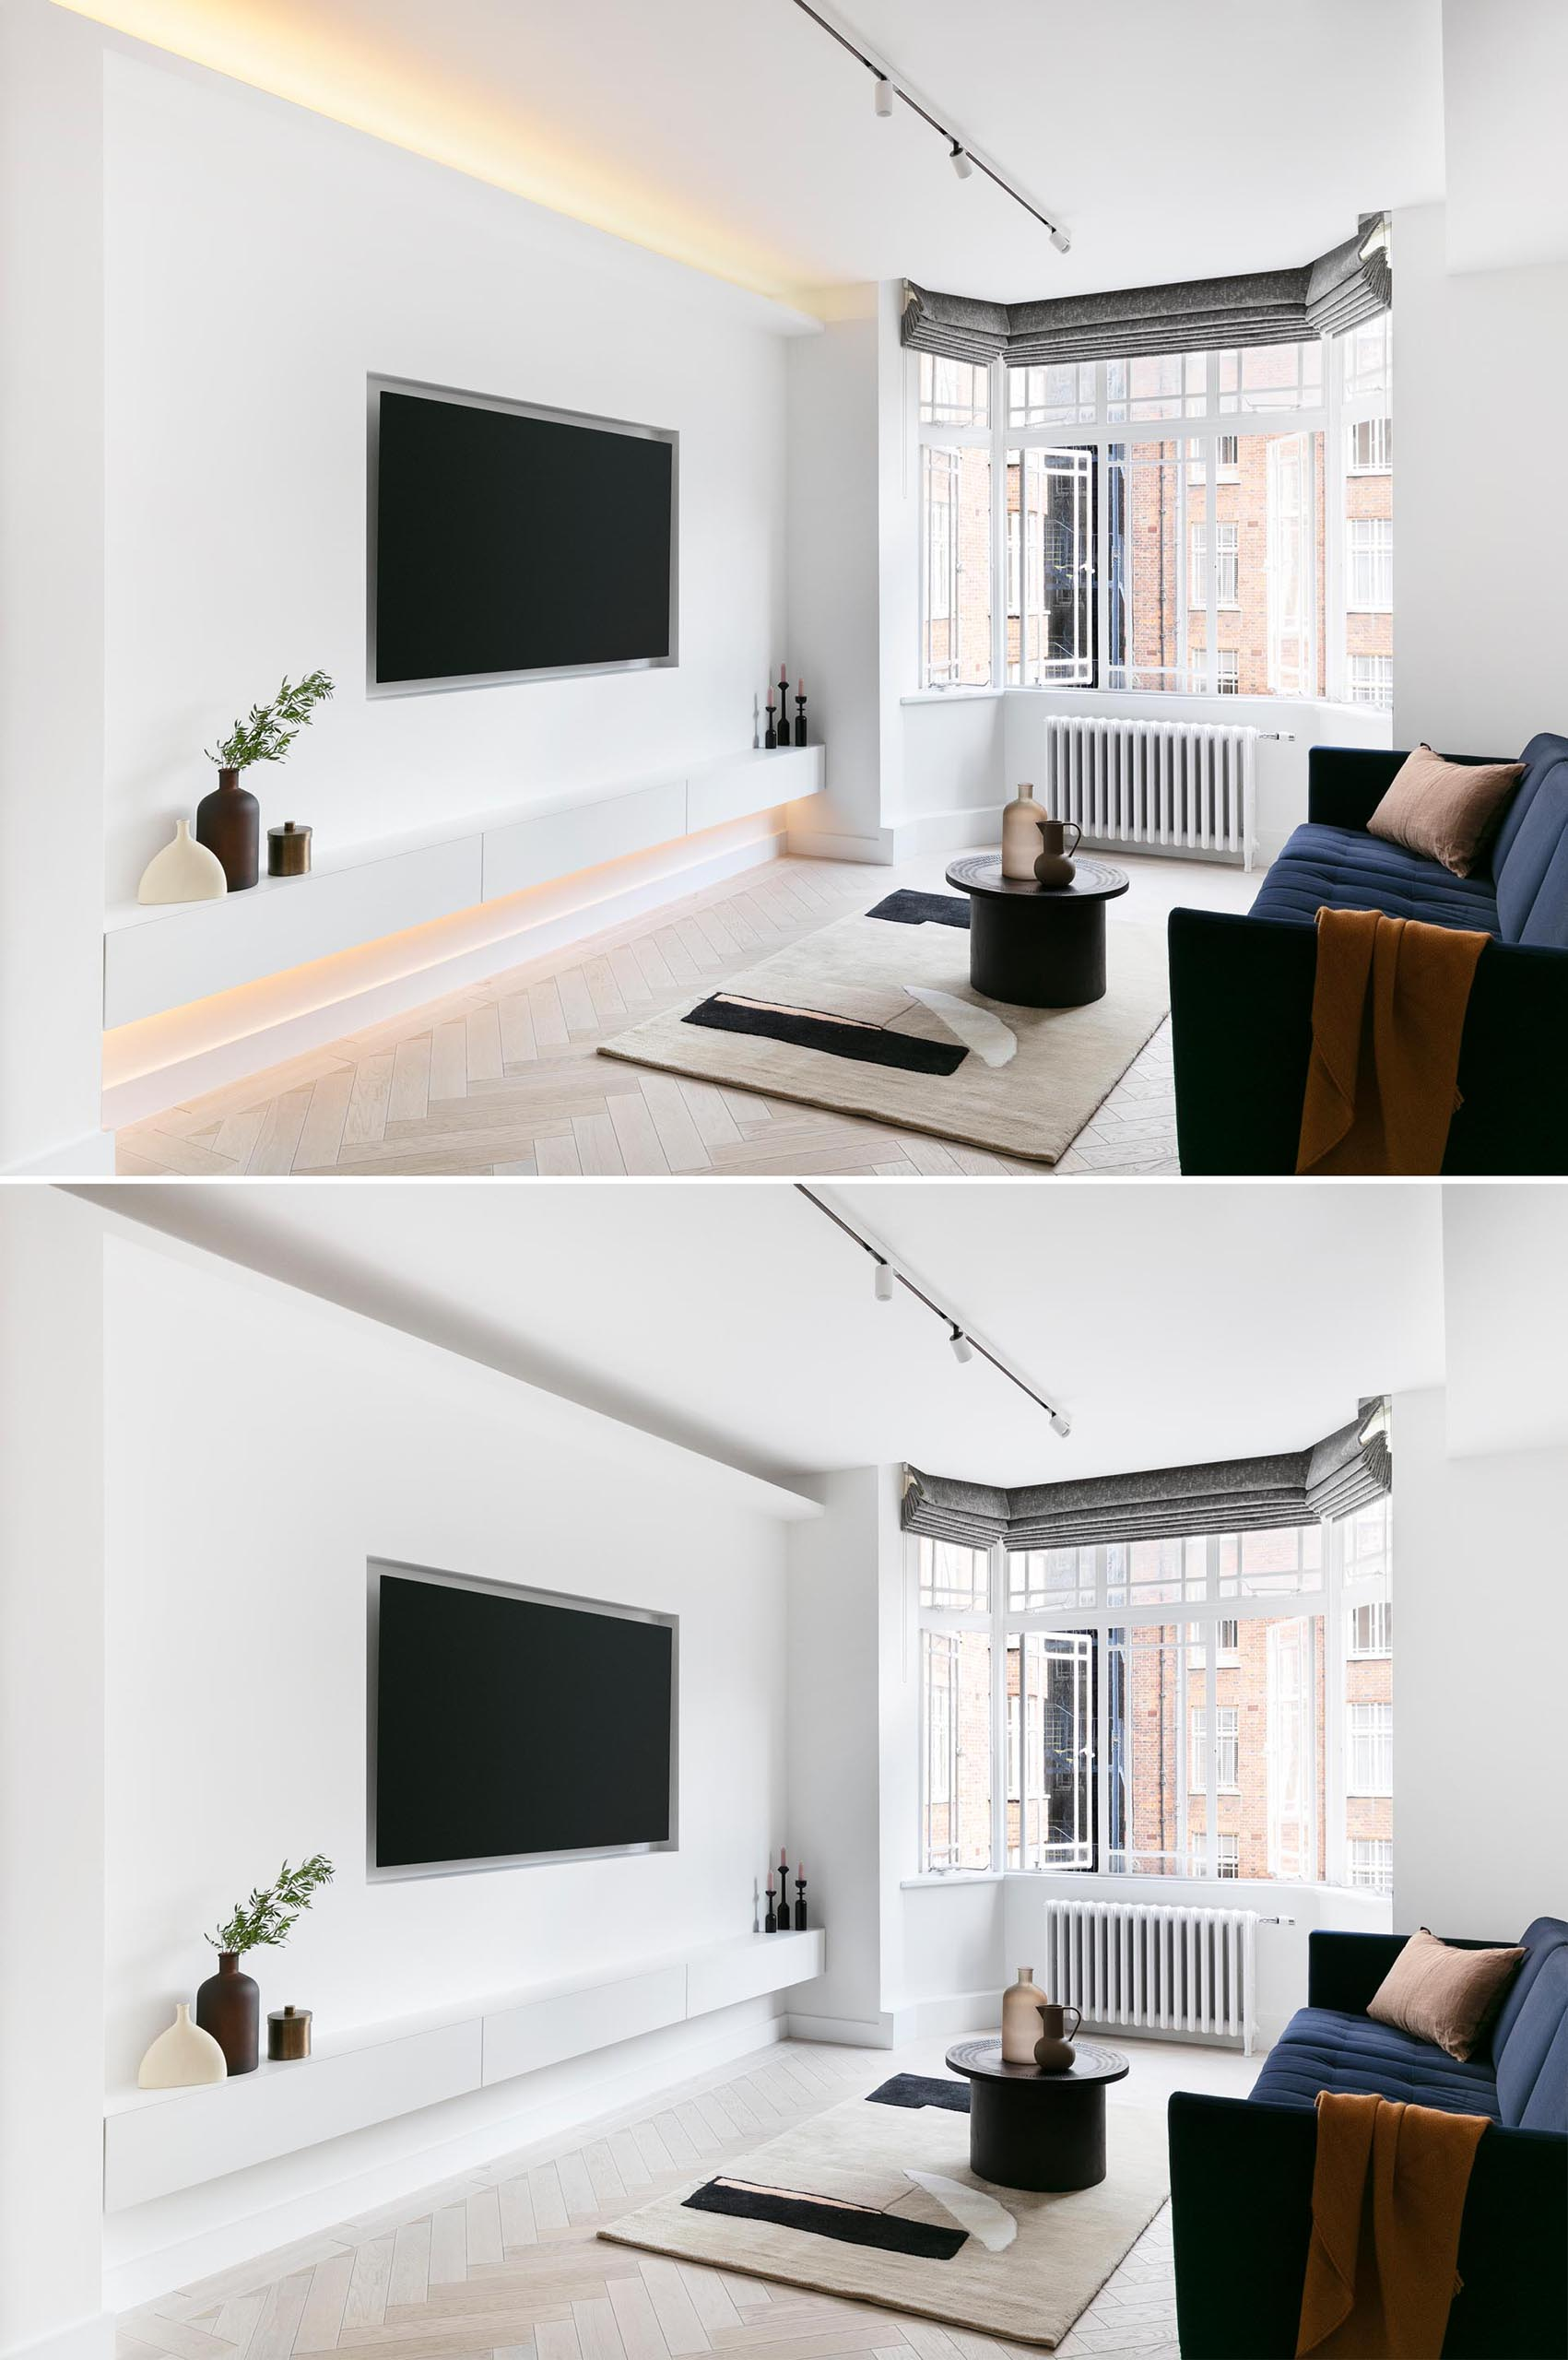 To create the bright spaces and clean lines, the designers went with crisp white walls and added in LED lighting to highlight the straight edges, like in the living room, also also includes a recessed television and floating storage cabinet.